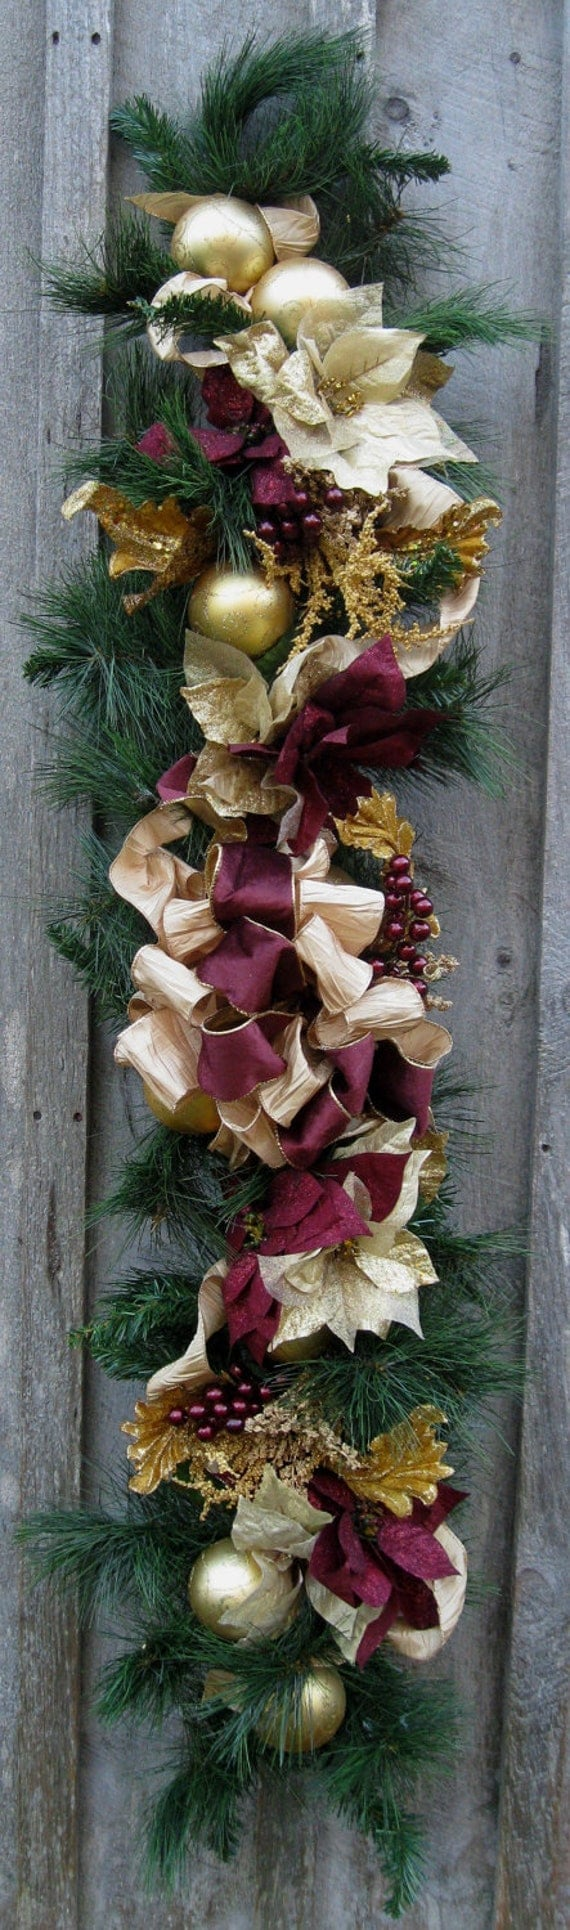 Christmas garland holiday swag elegant d cor by for Christmas swags and garlands to make